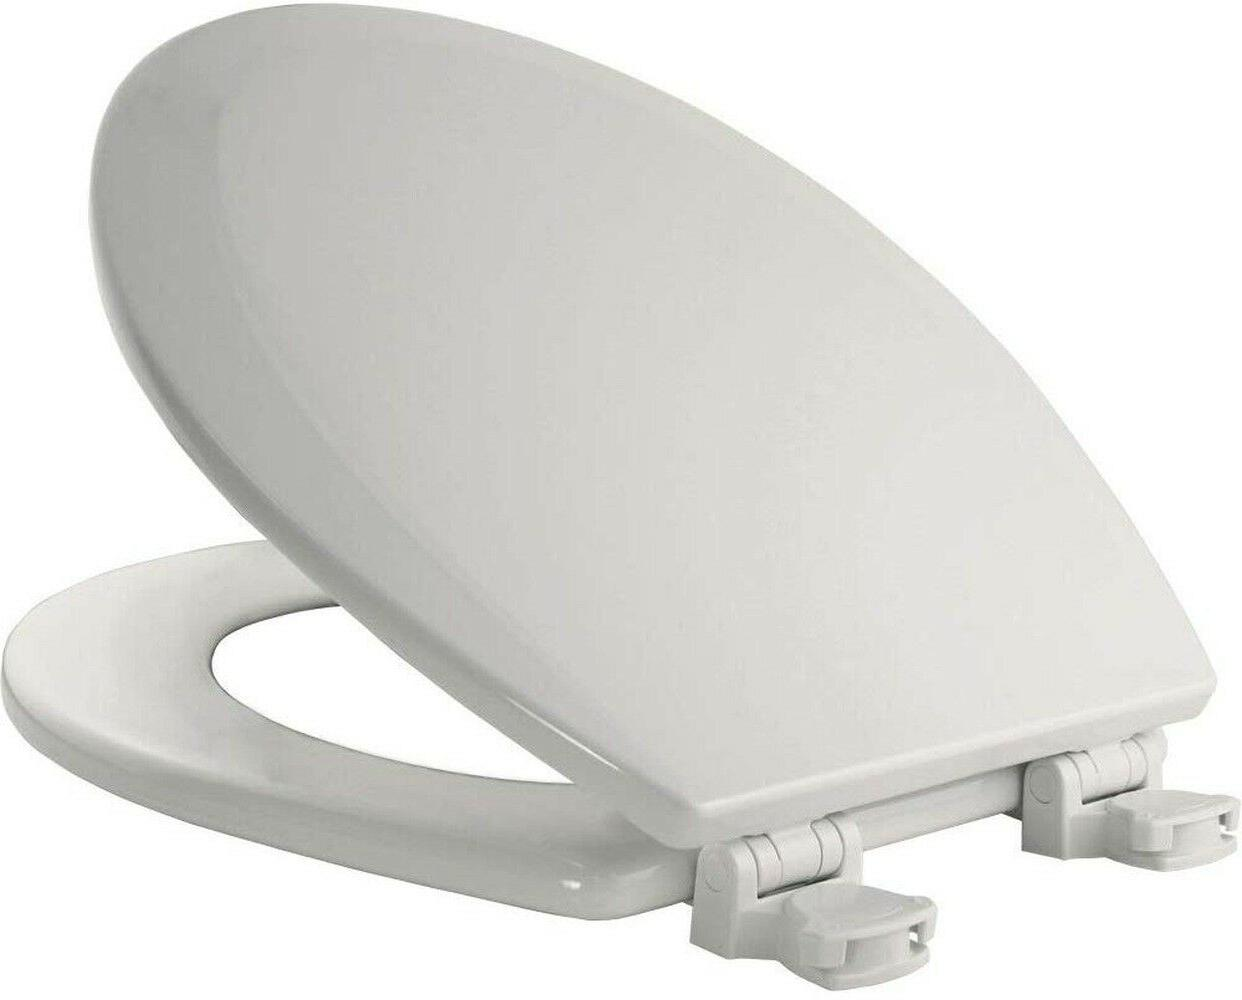 500ec 000 toilet seat with easy clean